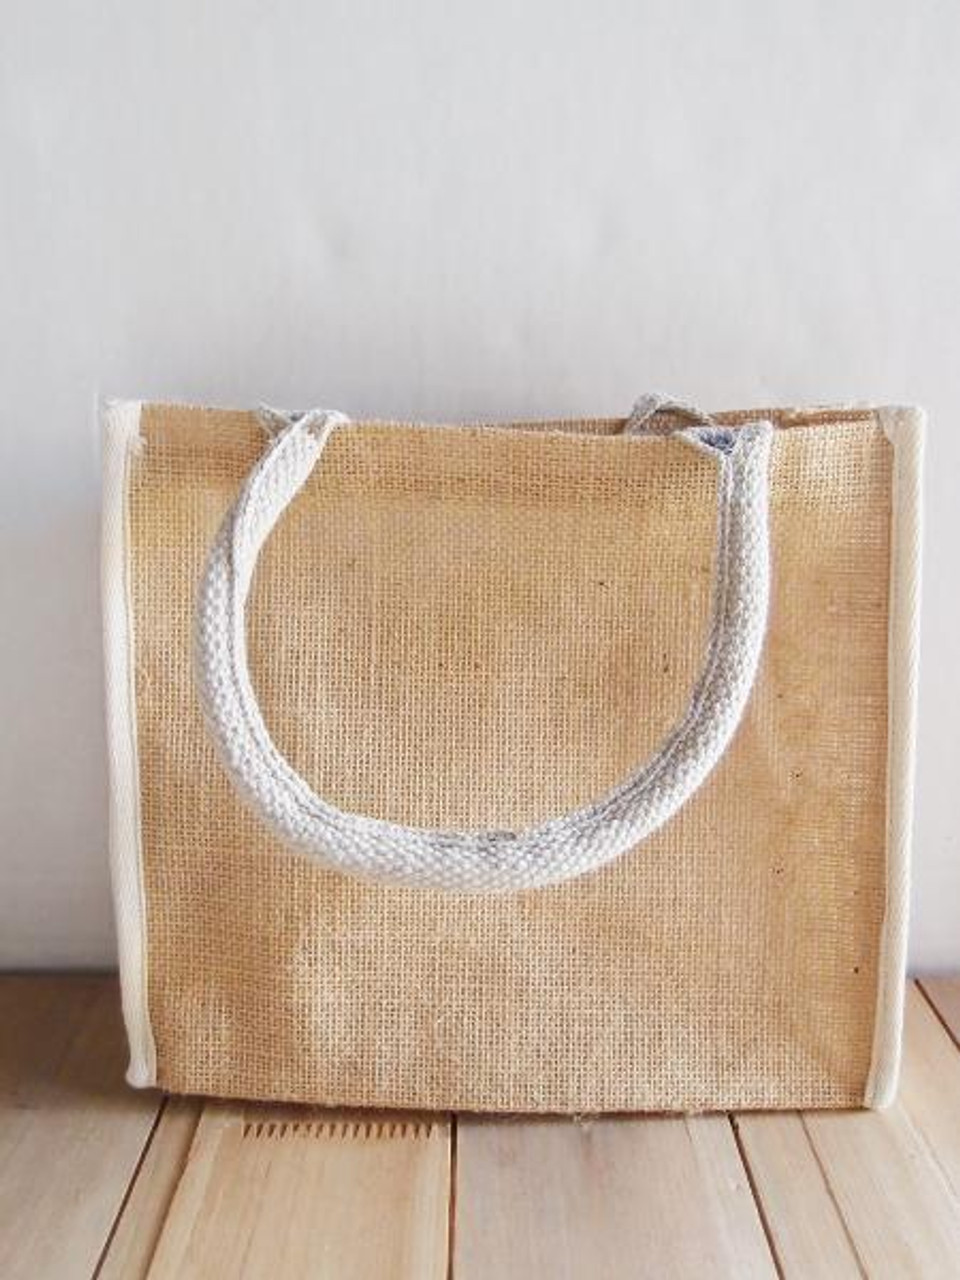 """Wholesale Jute Tote Bags for Weddings and Events, Jute Tote with White Cotton Trim 10 1/4"""" W x 9"""" H x 3"""" Gusset, B874-71"""